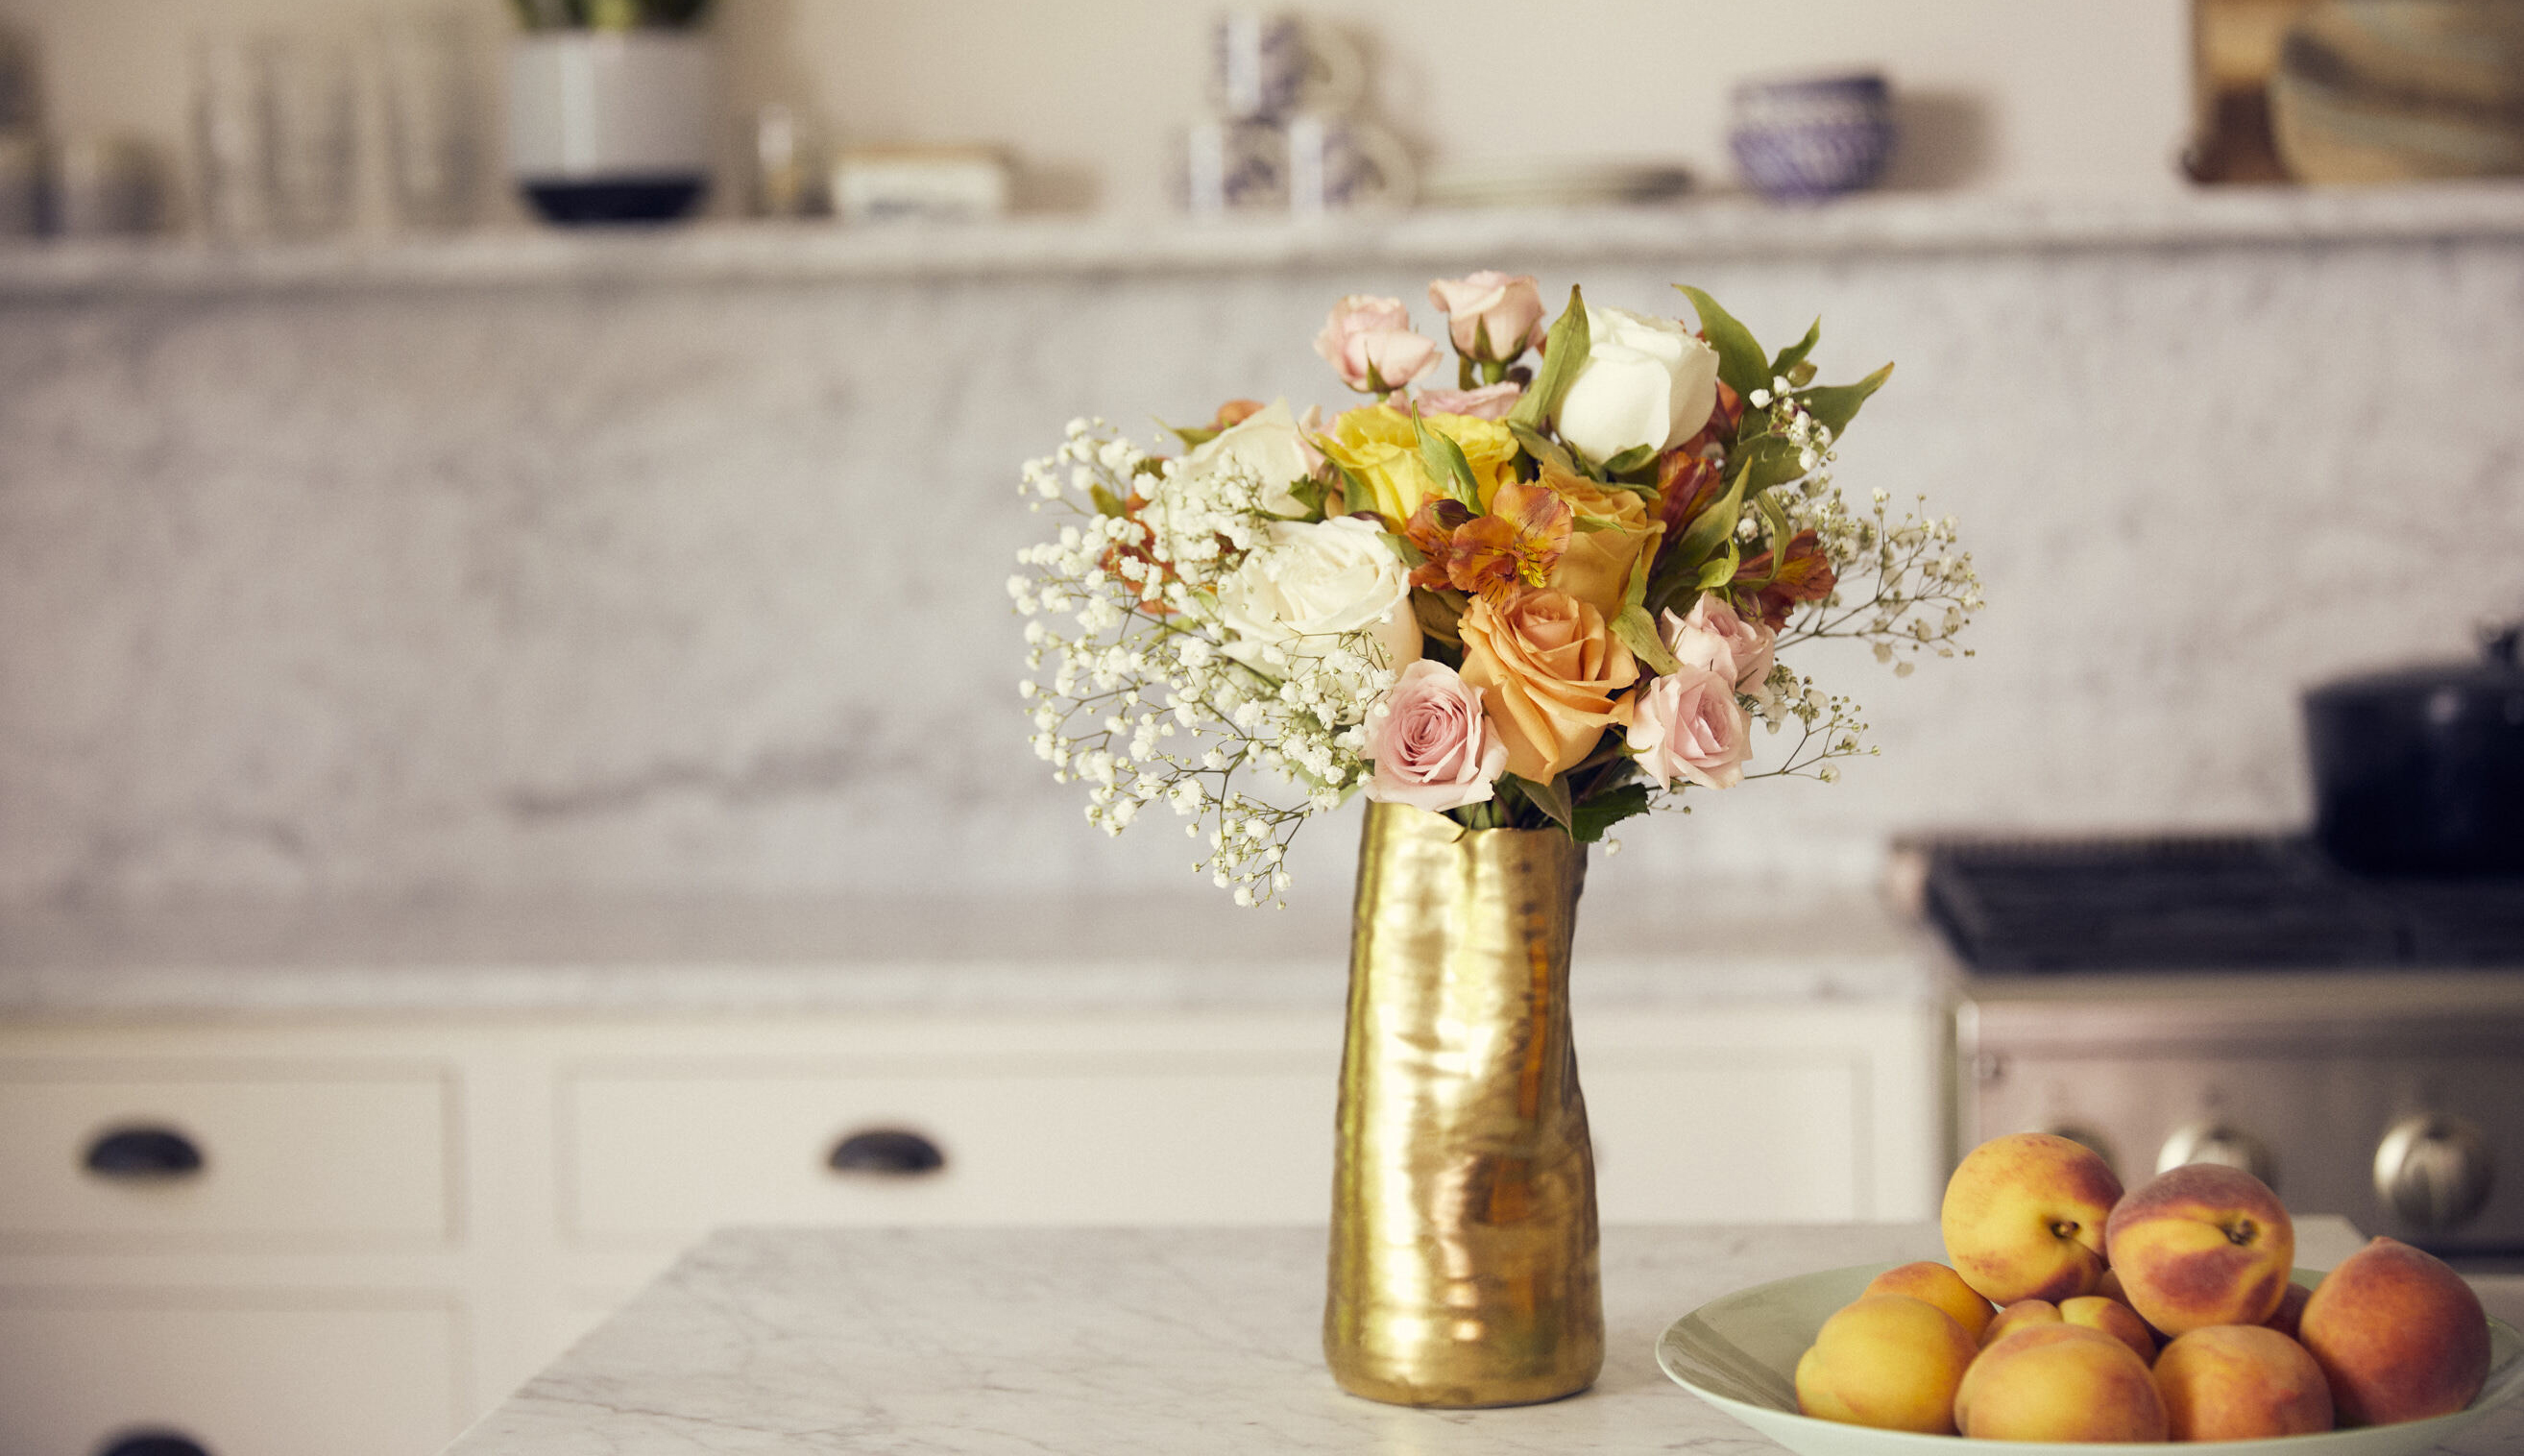 Bouquet of flowers in a gold vase on countertop